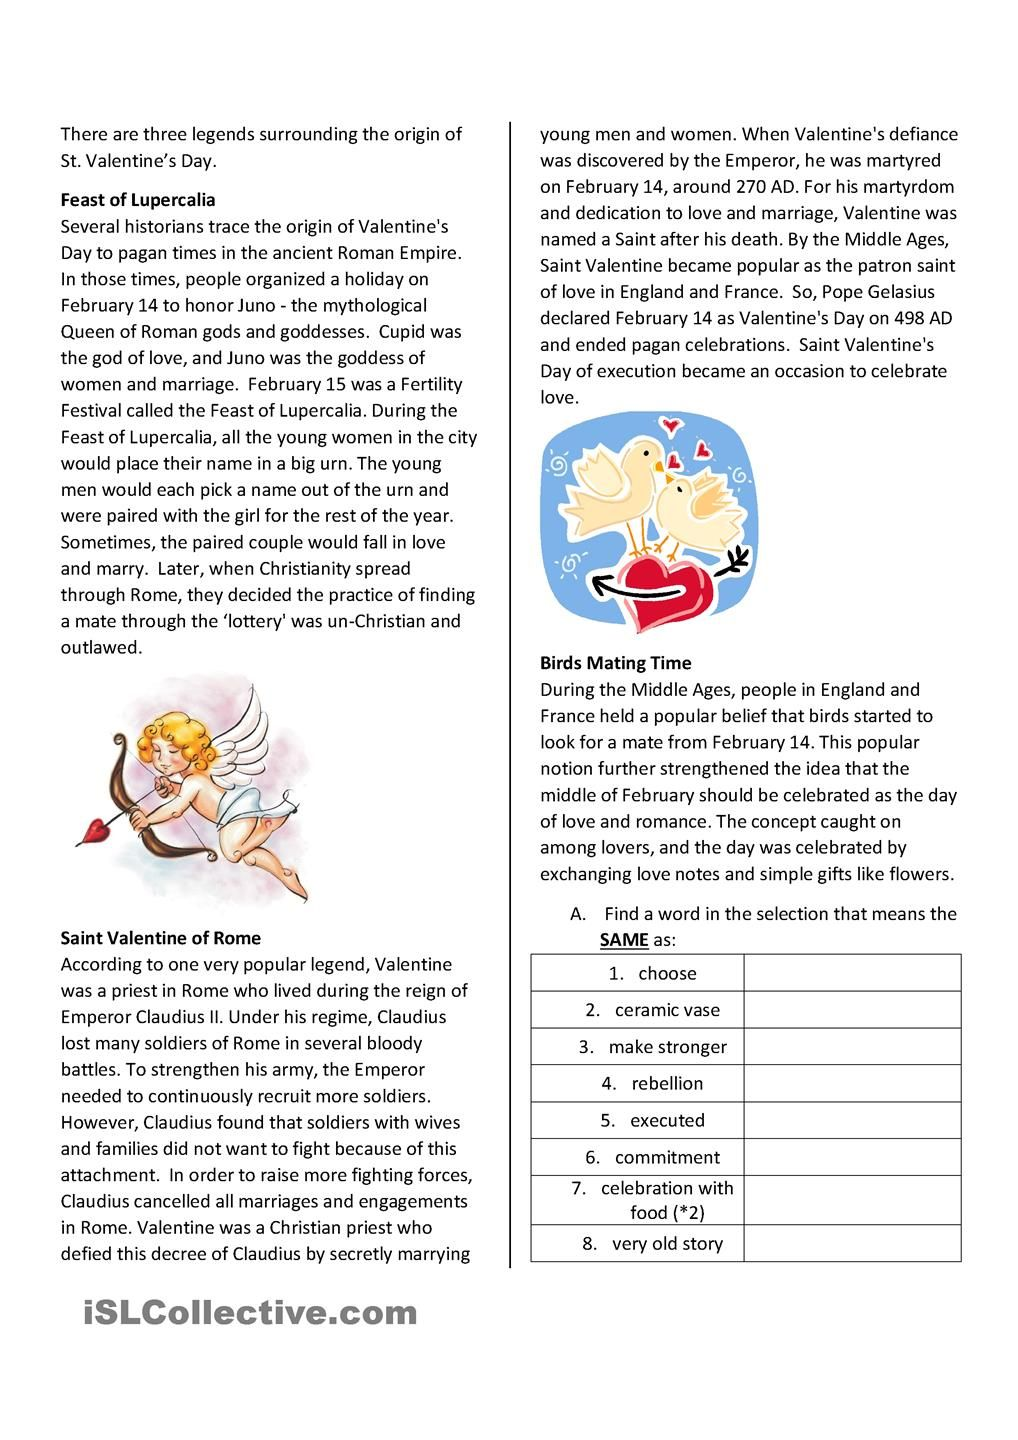 St Valentines Day Reading Comprehension  Reading comprehension